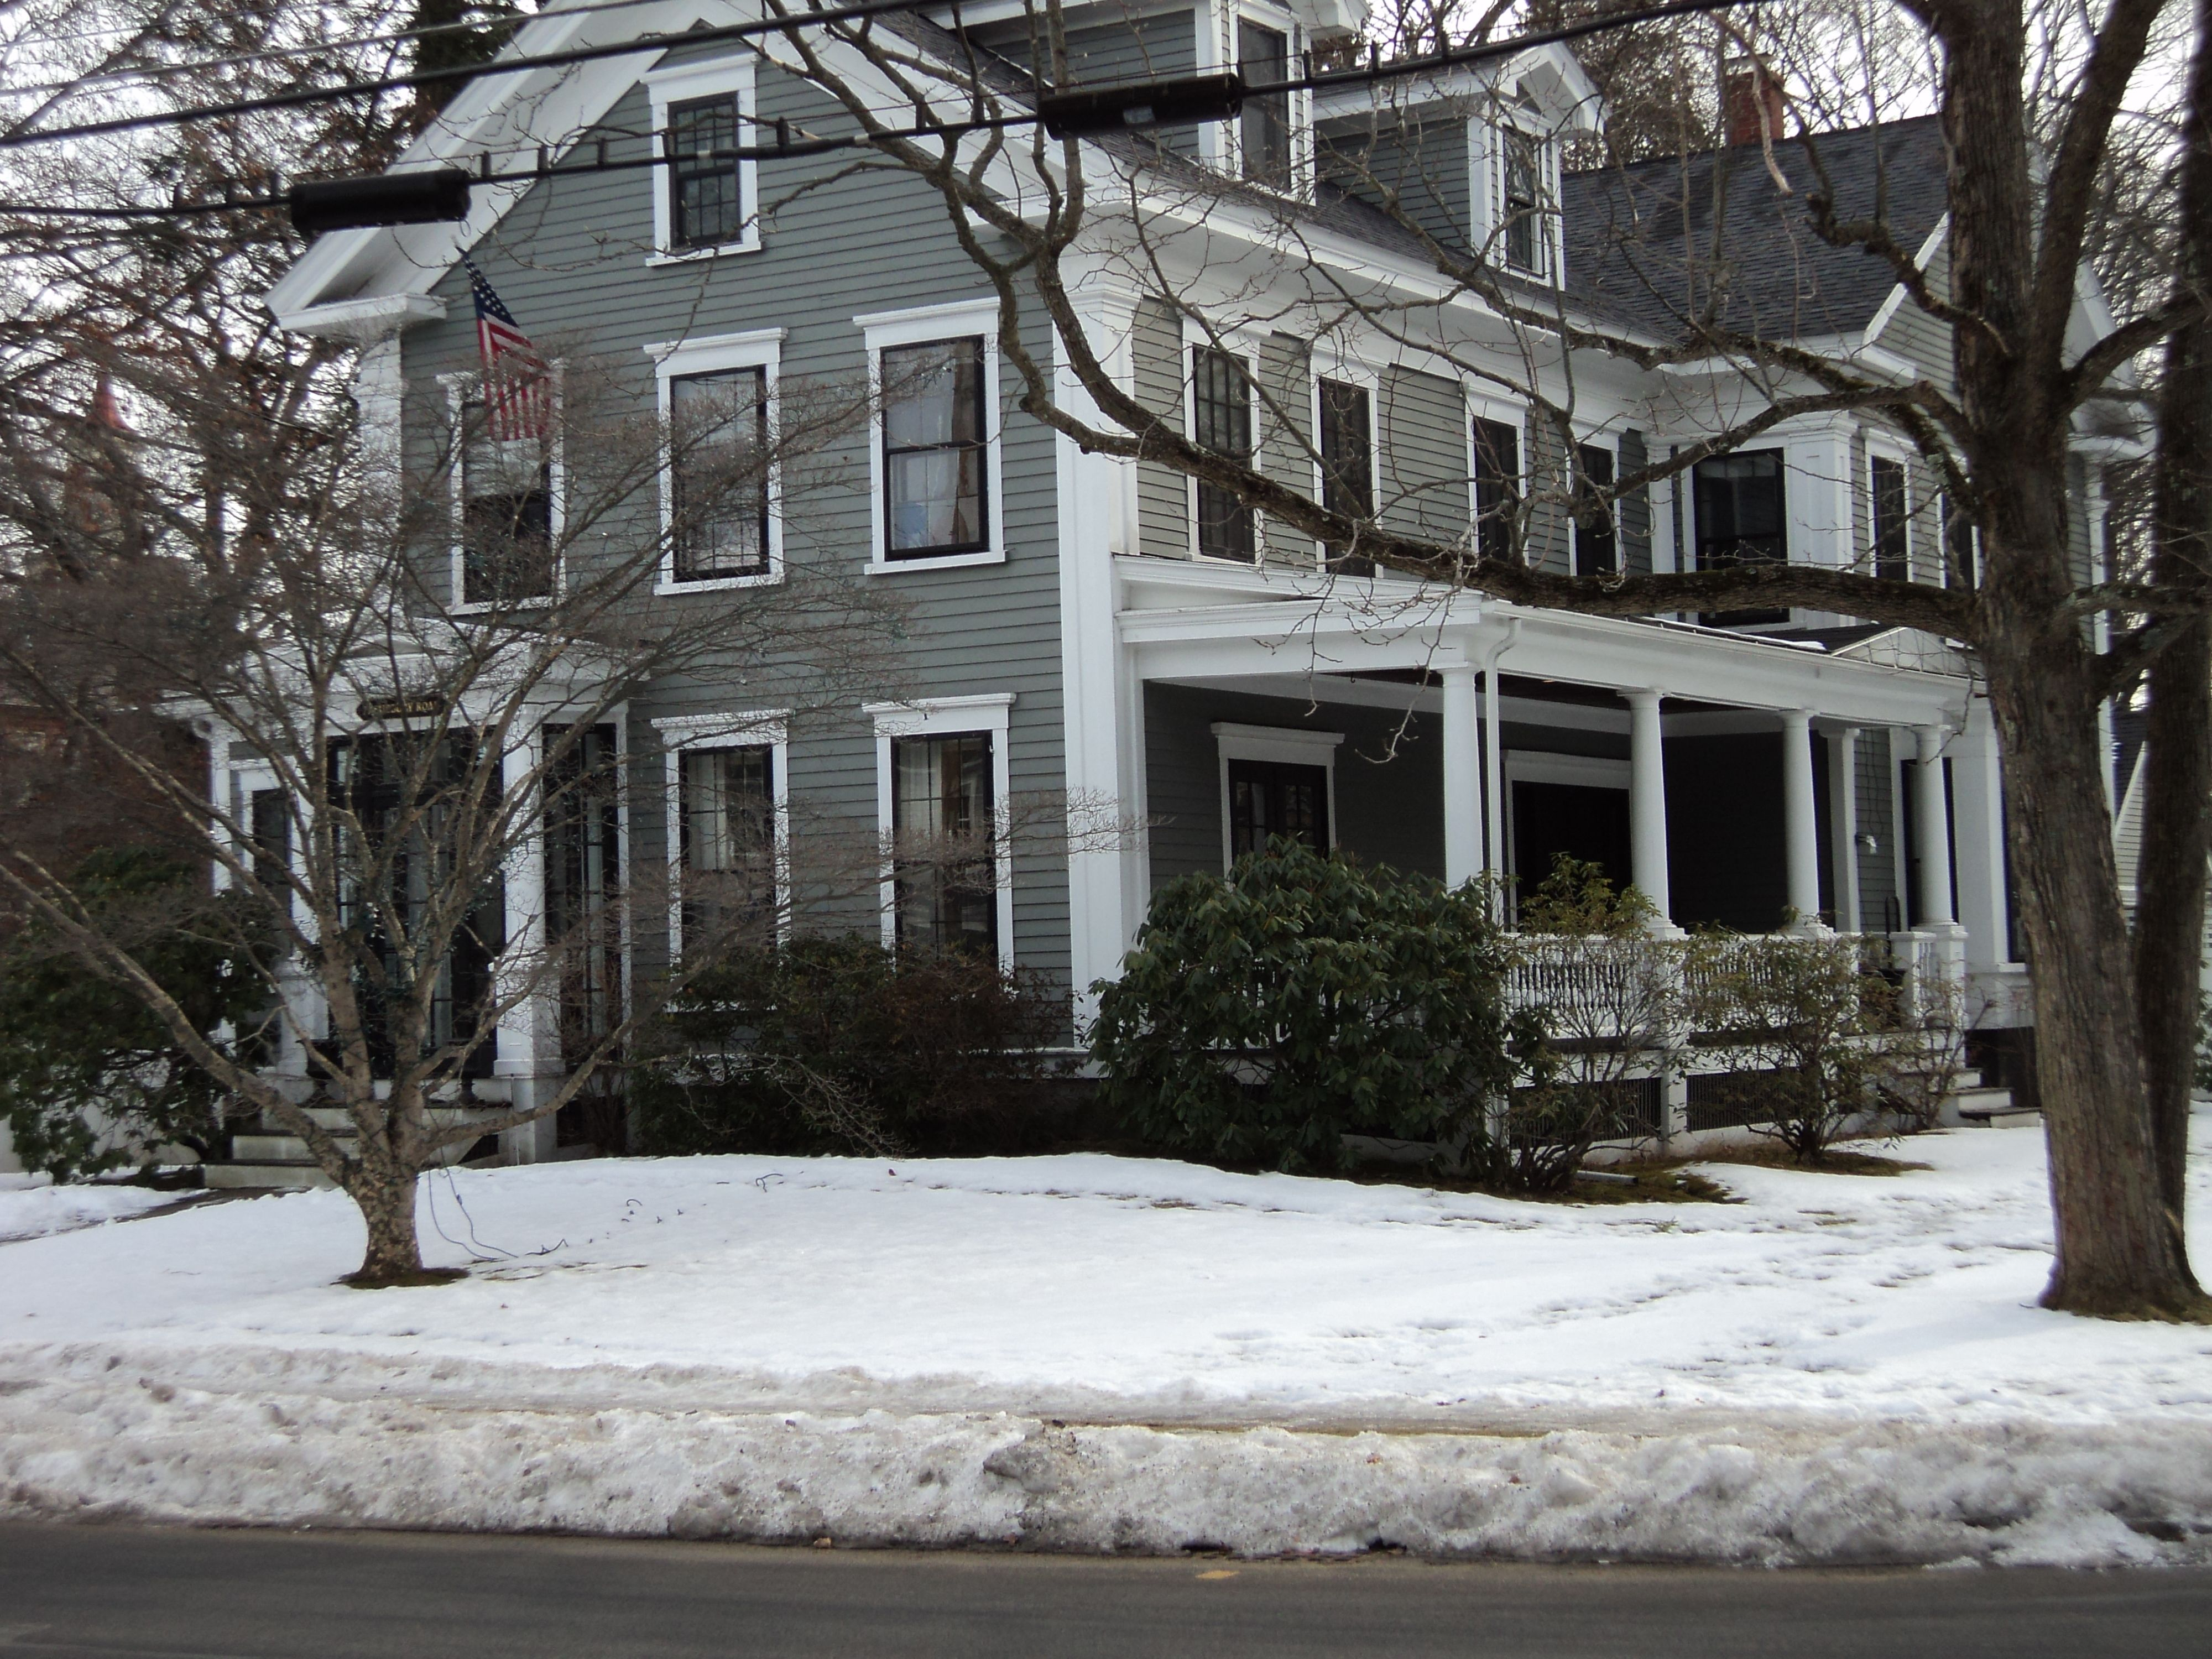 Benjamin moore gray exterior paint on houses this is a - Beautiful exterior house paint colors ...